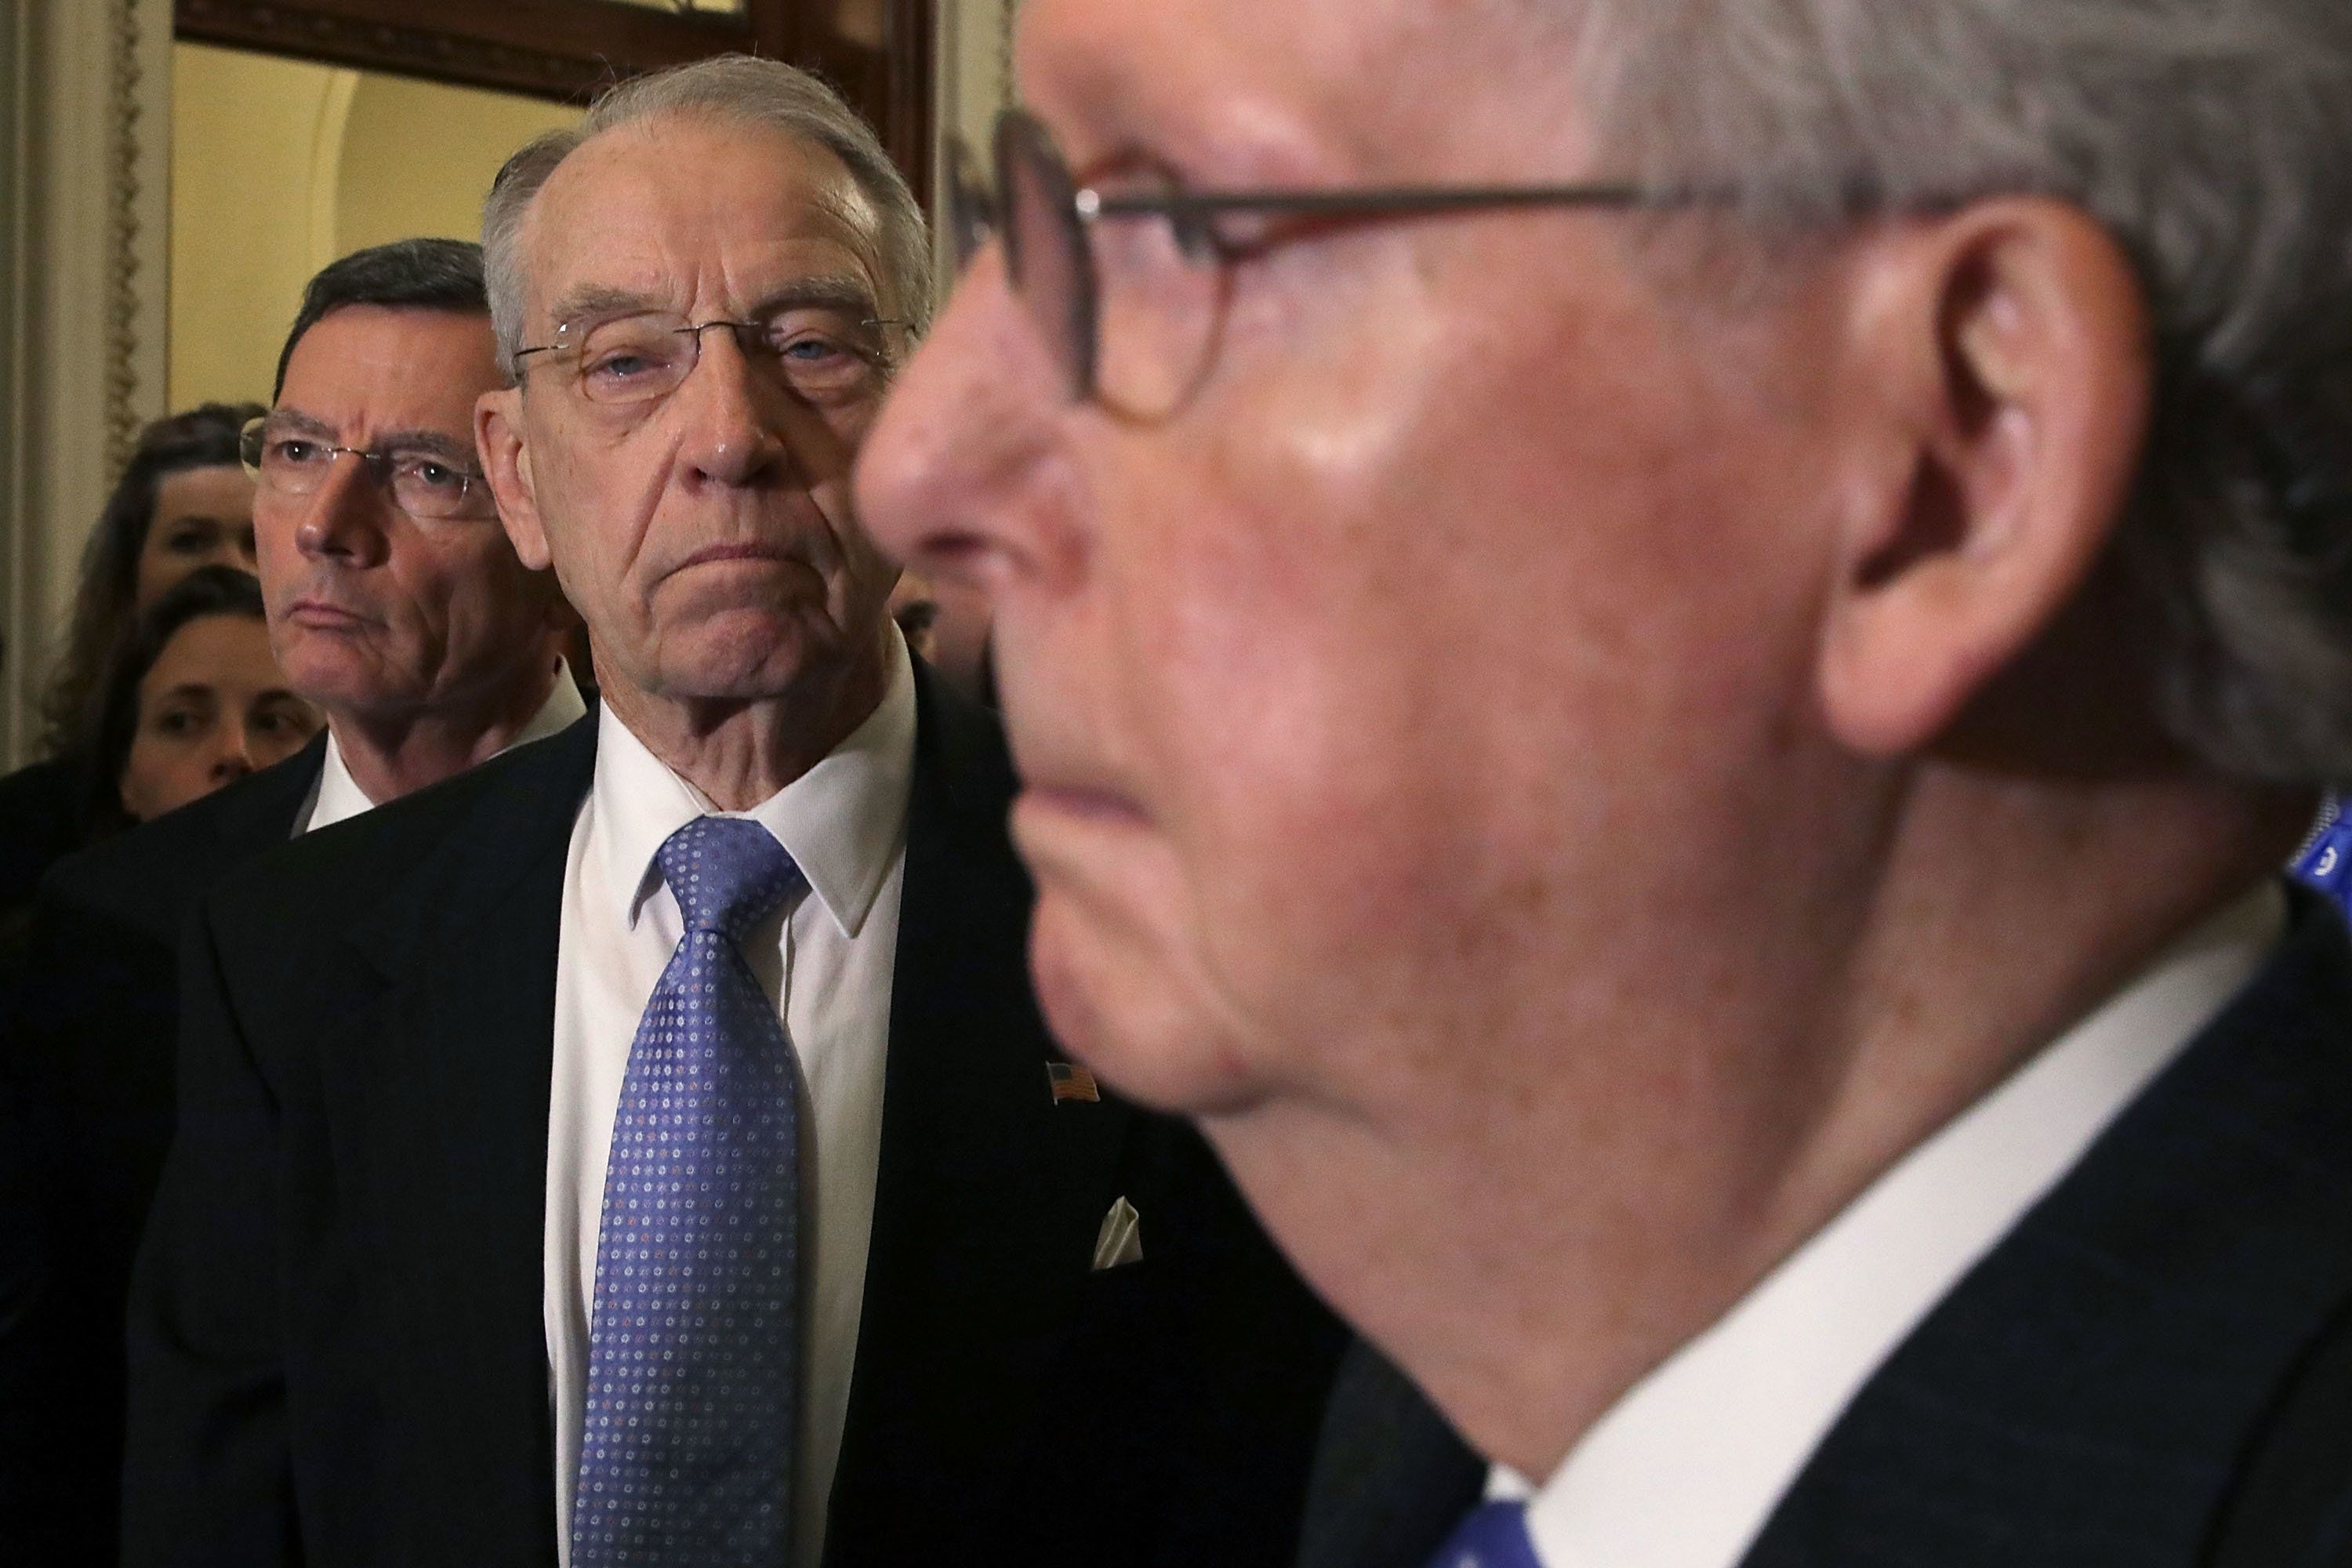 WASHINGTON, DC - APRIL 04:  Senate Judiciary Committee Chairman Charles Grassley (R-IA) (C) joins Sen. John Barrasso (R-WY) (L) and Majority Leader Mitch McConnell (R-KY) for a news conference following the weekly Republican policy luncheon at the U.S. Capitol April 4, 2017 in Washington, DC. McConnell said that Republican majority will invoke the 'nuclear option' in order to confirm Judge Neil Gorsuch to the U.S. Supreme Court this week.  (Photo by Chip Somodevilla/Getty Images)